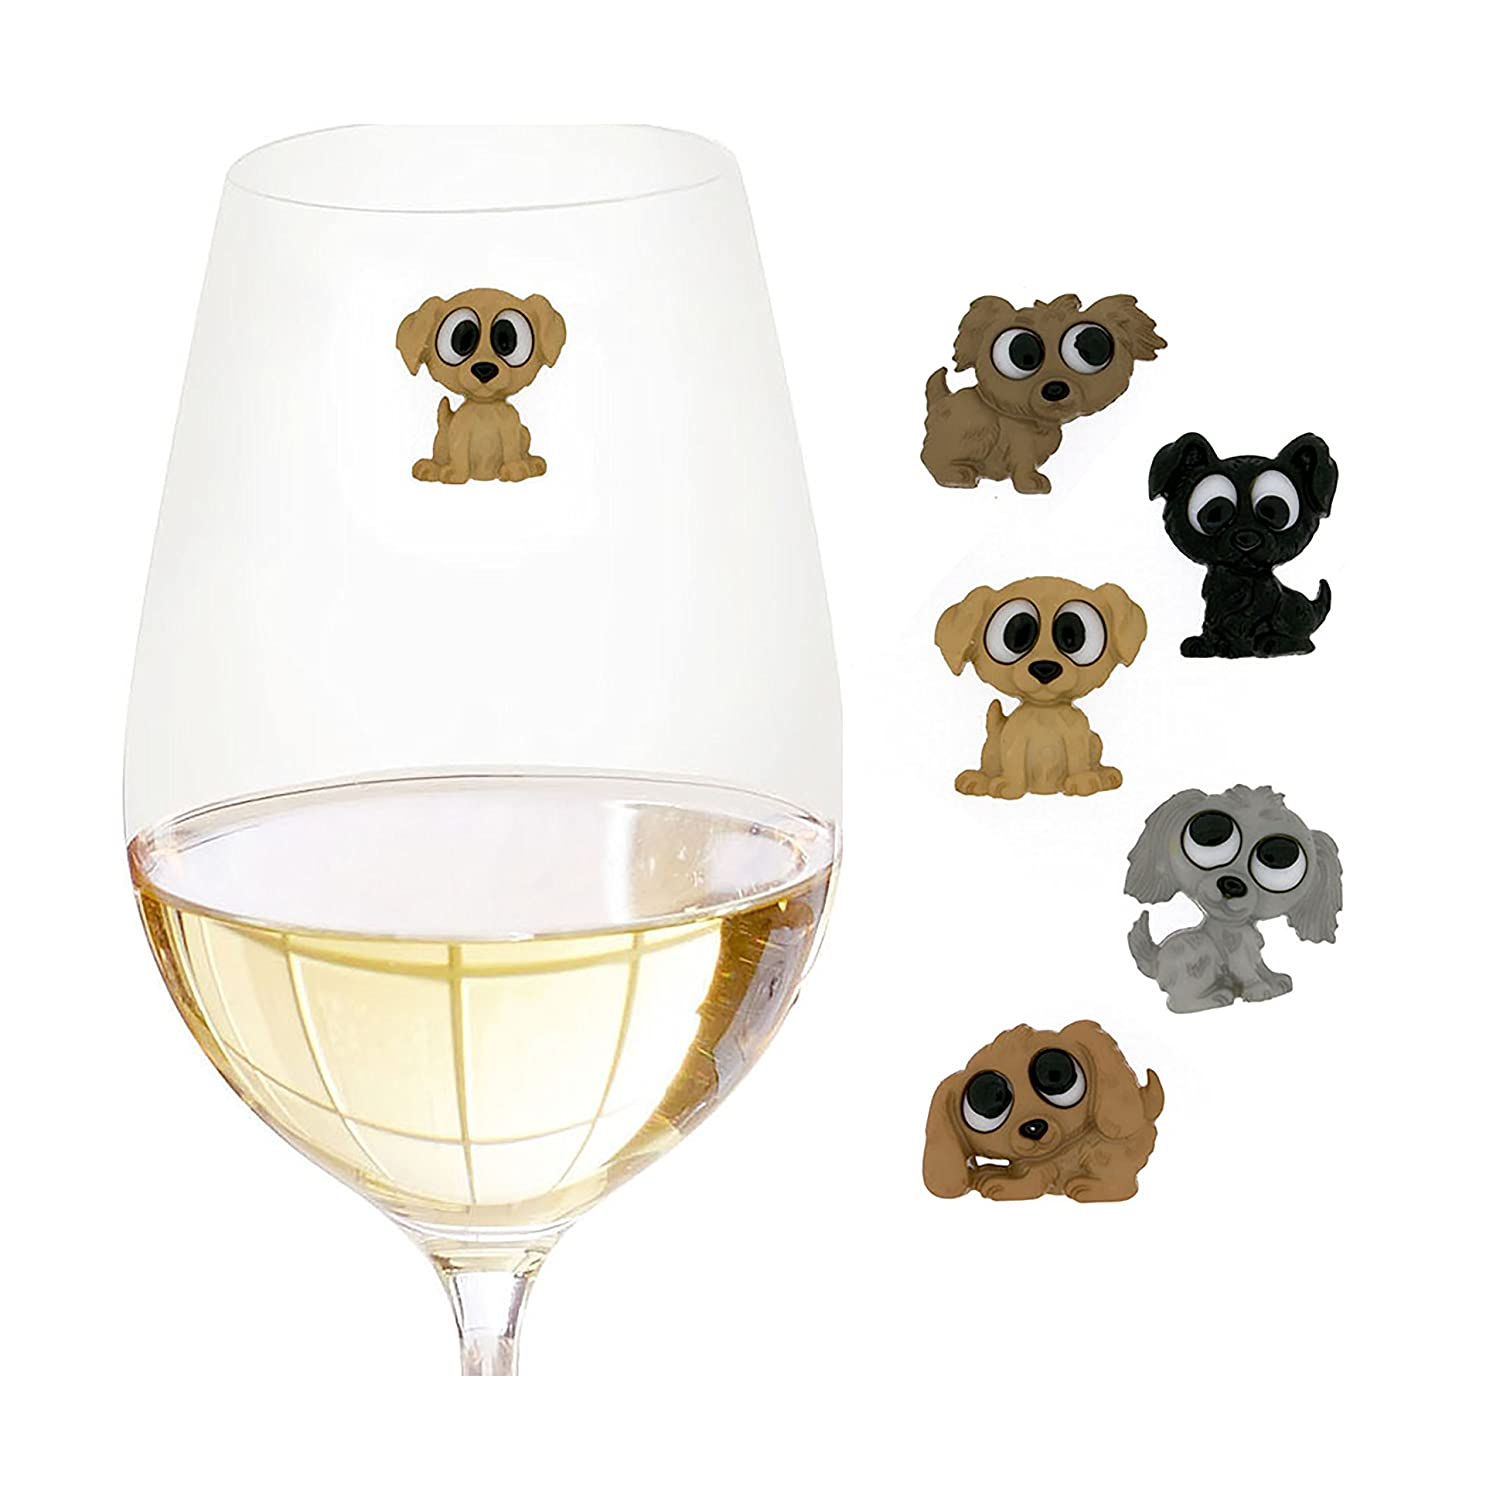 Big Eyed Dog Wine Charms or Glass Markers for Stemless Glasses - Set of 5 - Great Gift for Dog Lovers - Cute Puppy Glass Identifiers